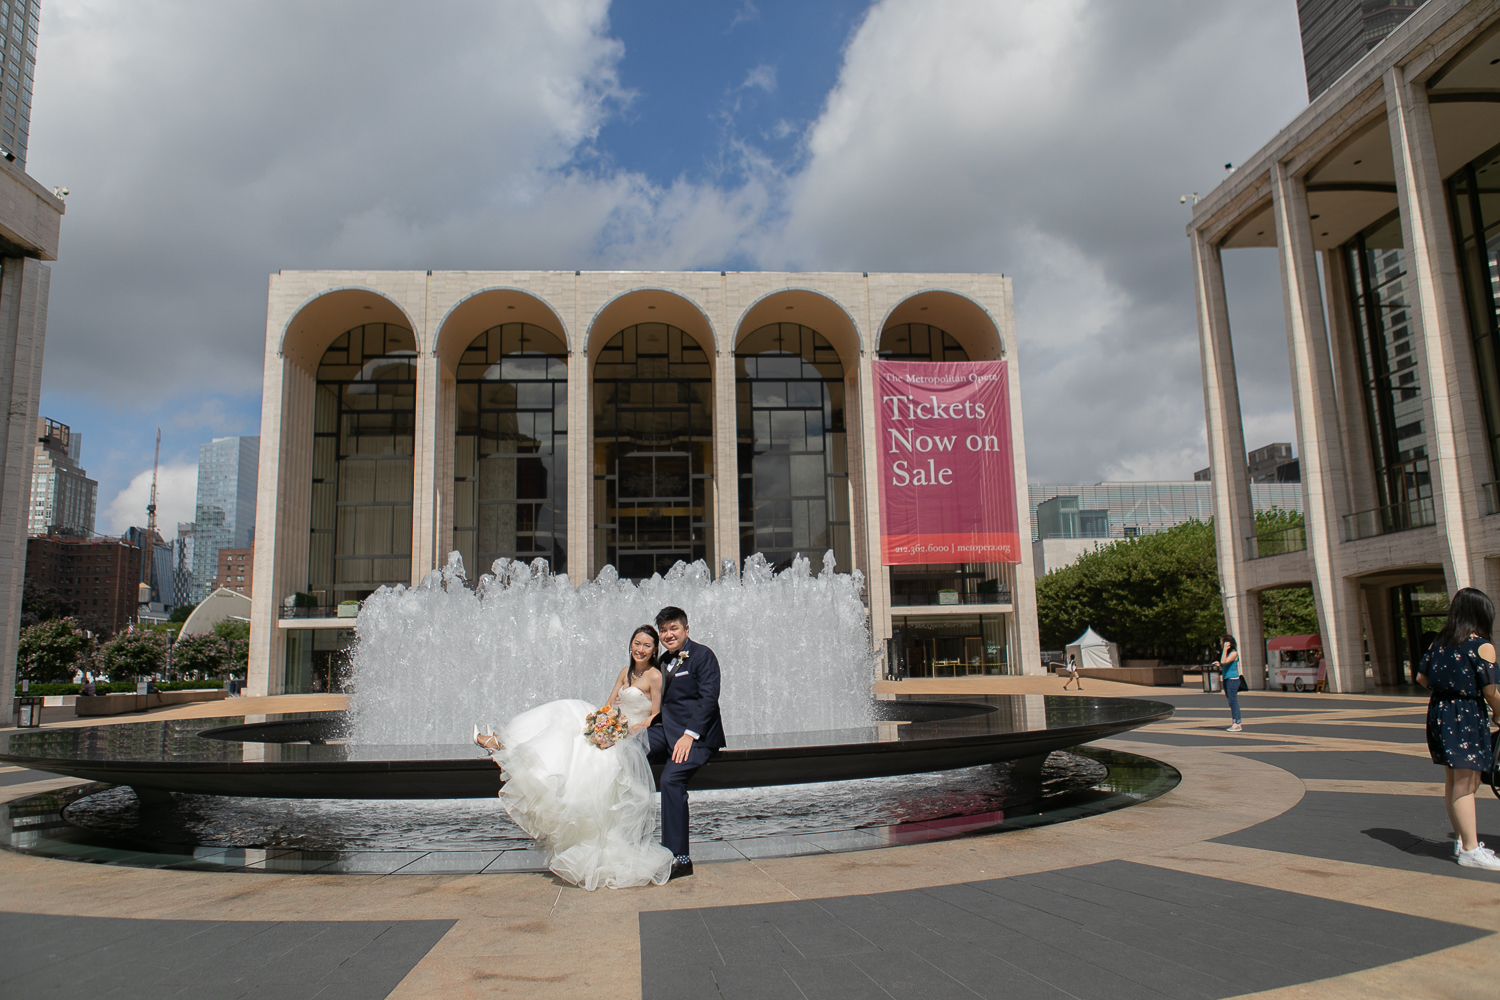 Couple posing for wedding portraits in front of the fountain at Lincoln Center in New York City | Lincoln Center Wedding Photos | Jason and Susanna's Glam NYC Elopement